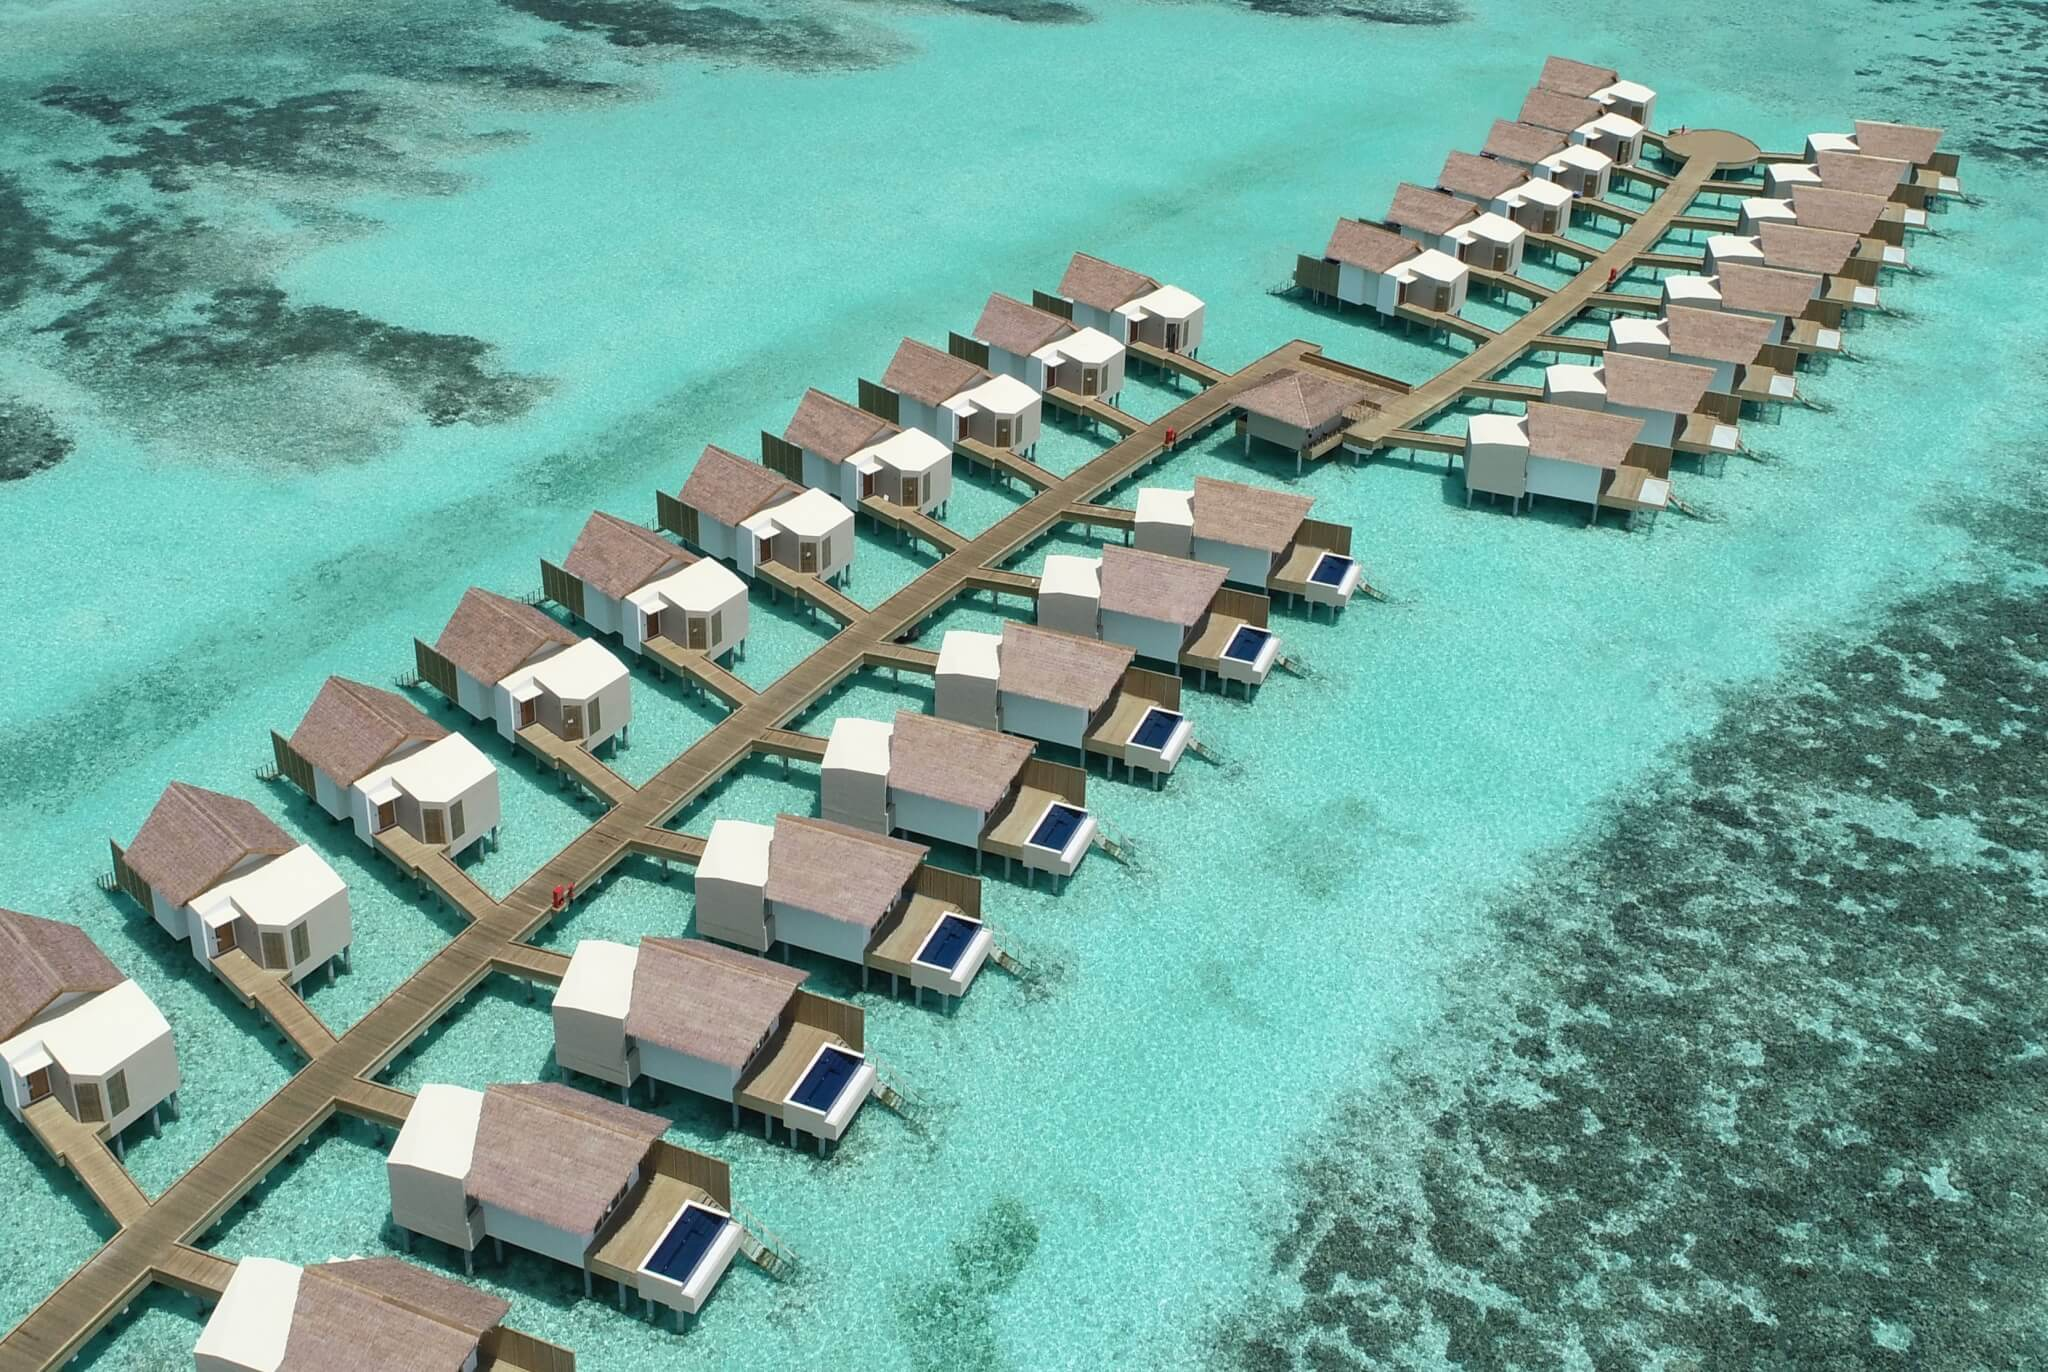 First Hard Rock Hotel opens in the Maldives